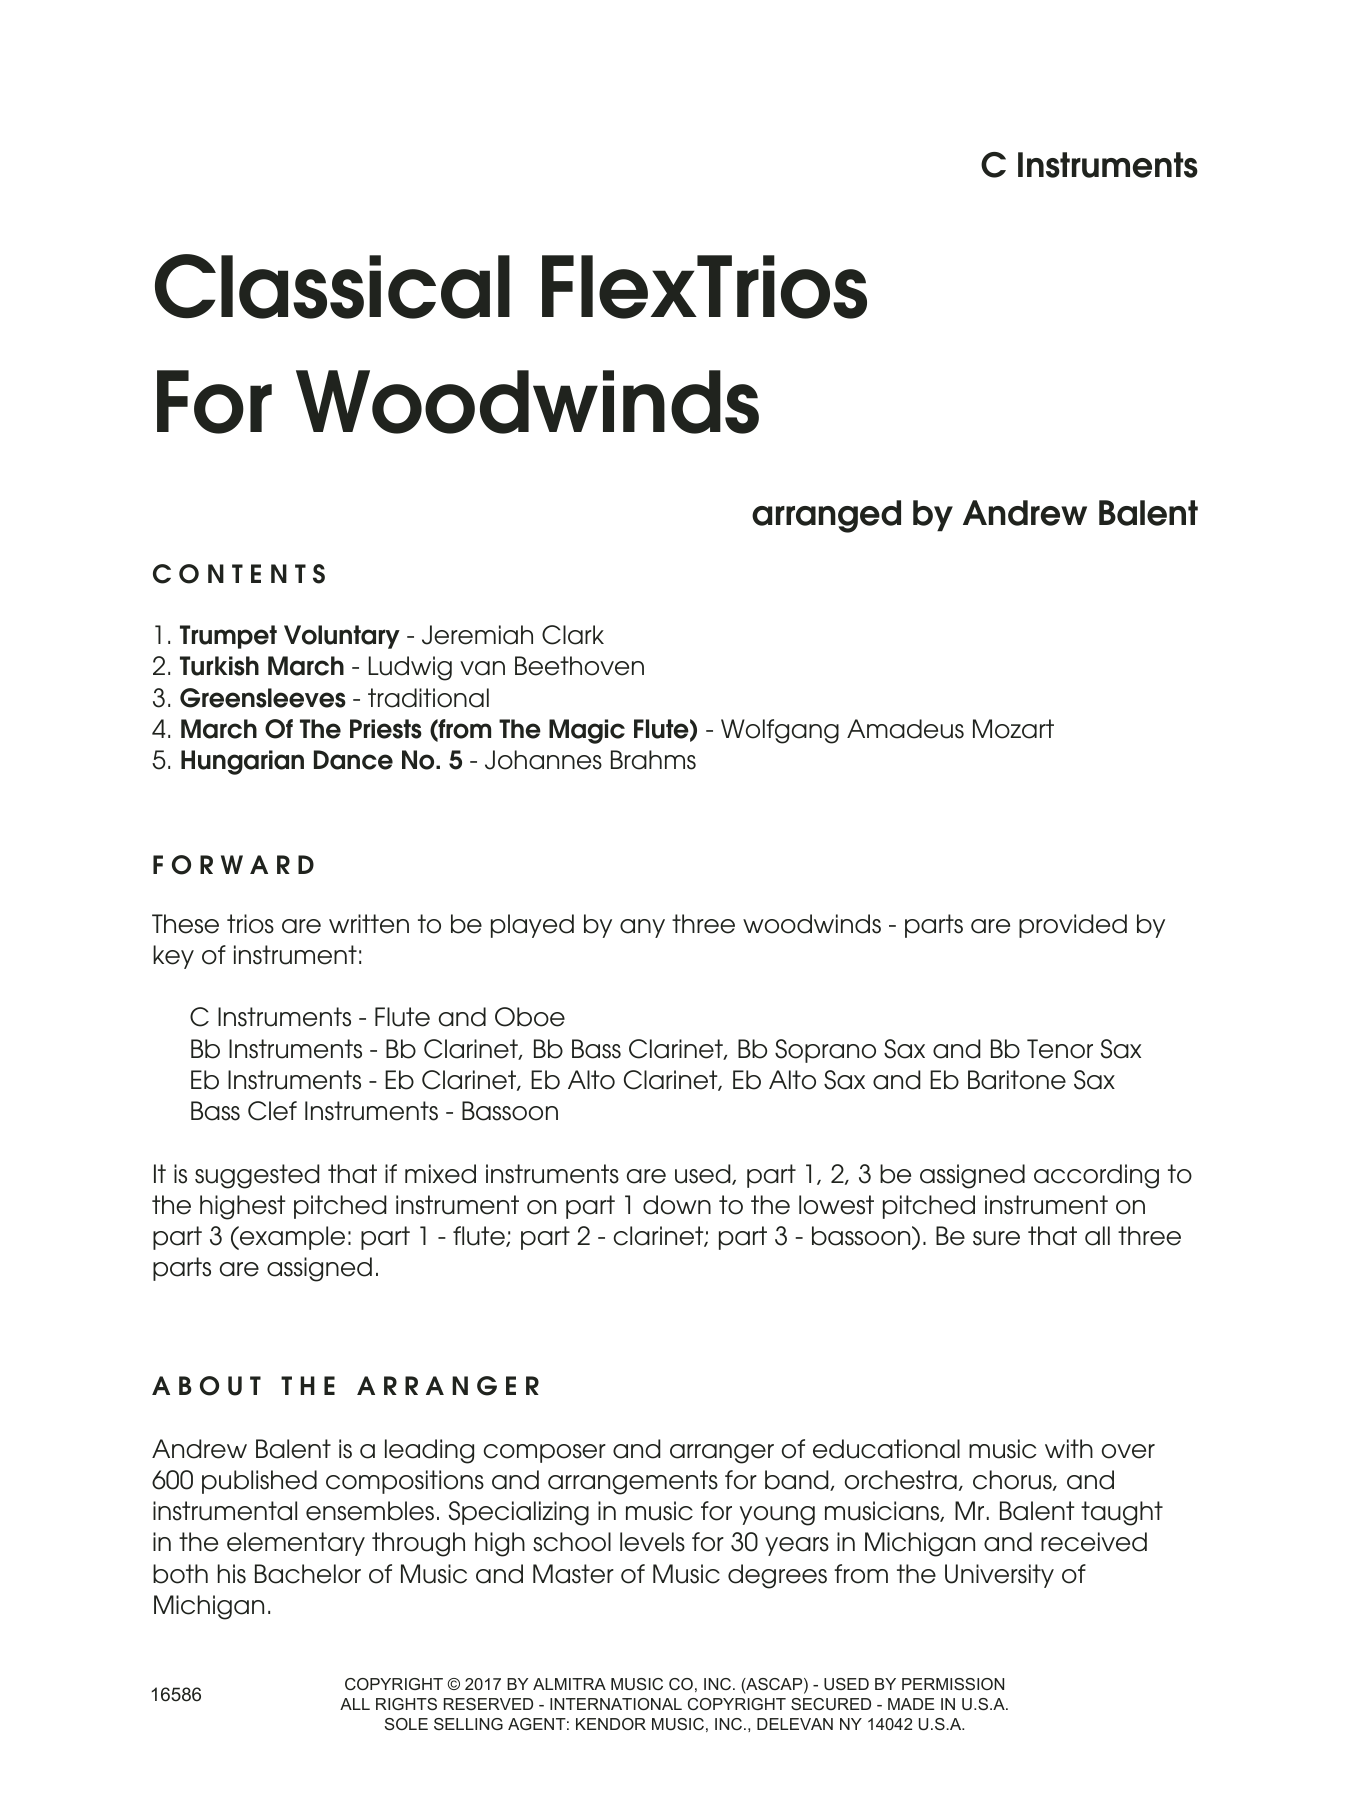 Classical FlexTrios For Woodwinds (complete set of parts) sheet music for wind ensemble by Andrew Balent. Score Image Preview.